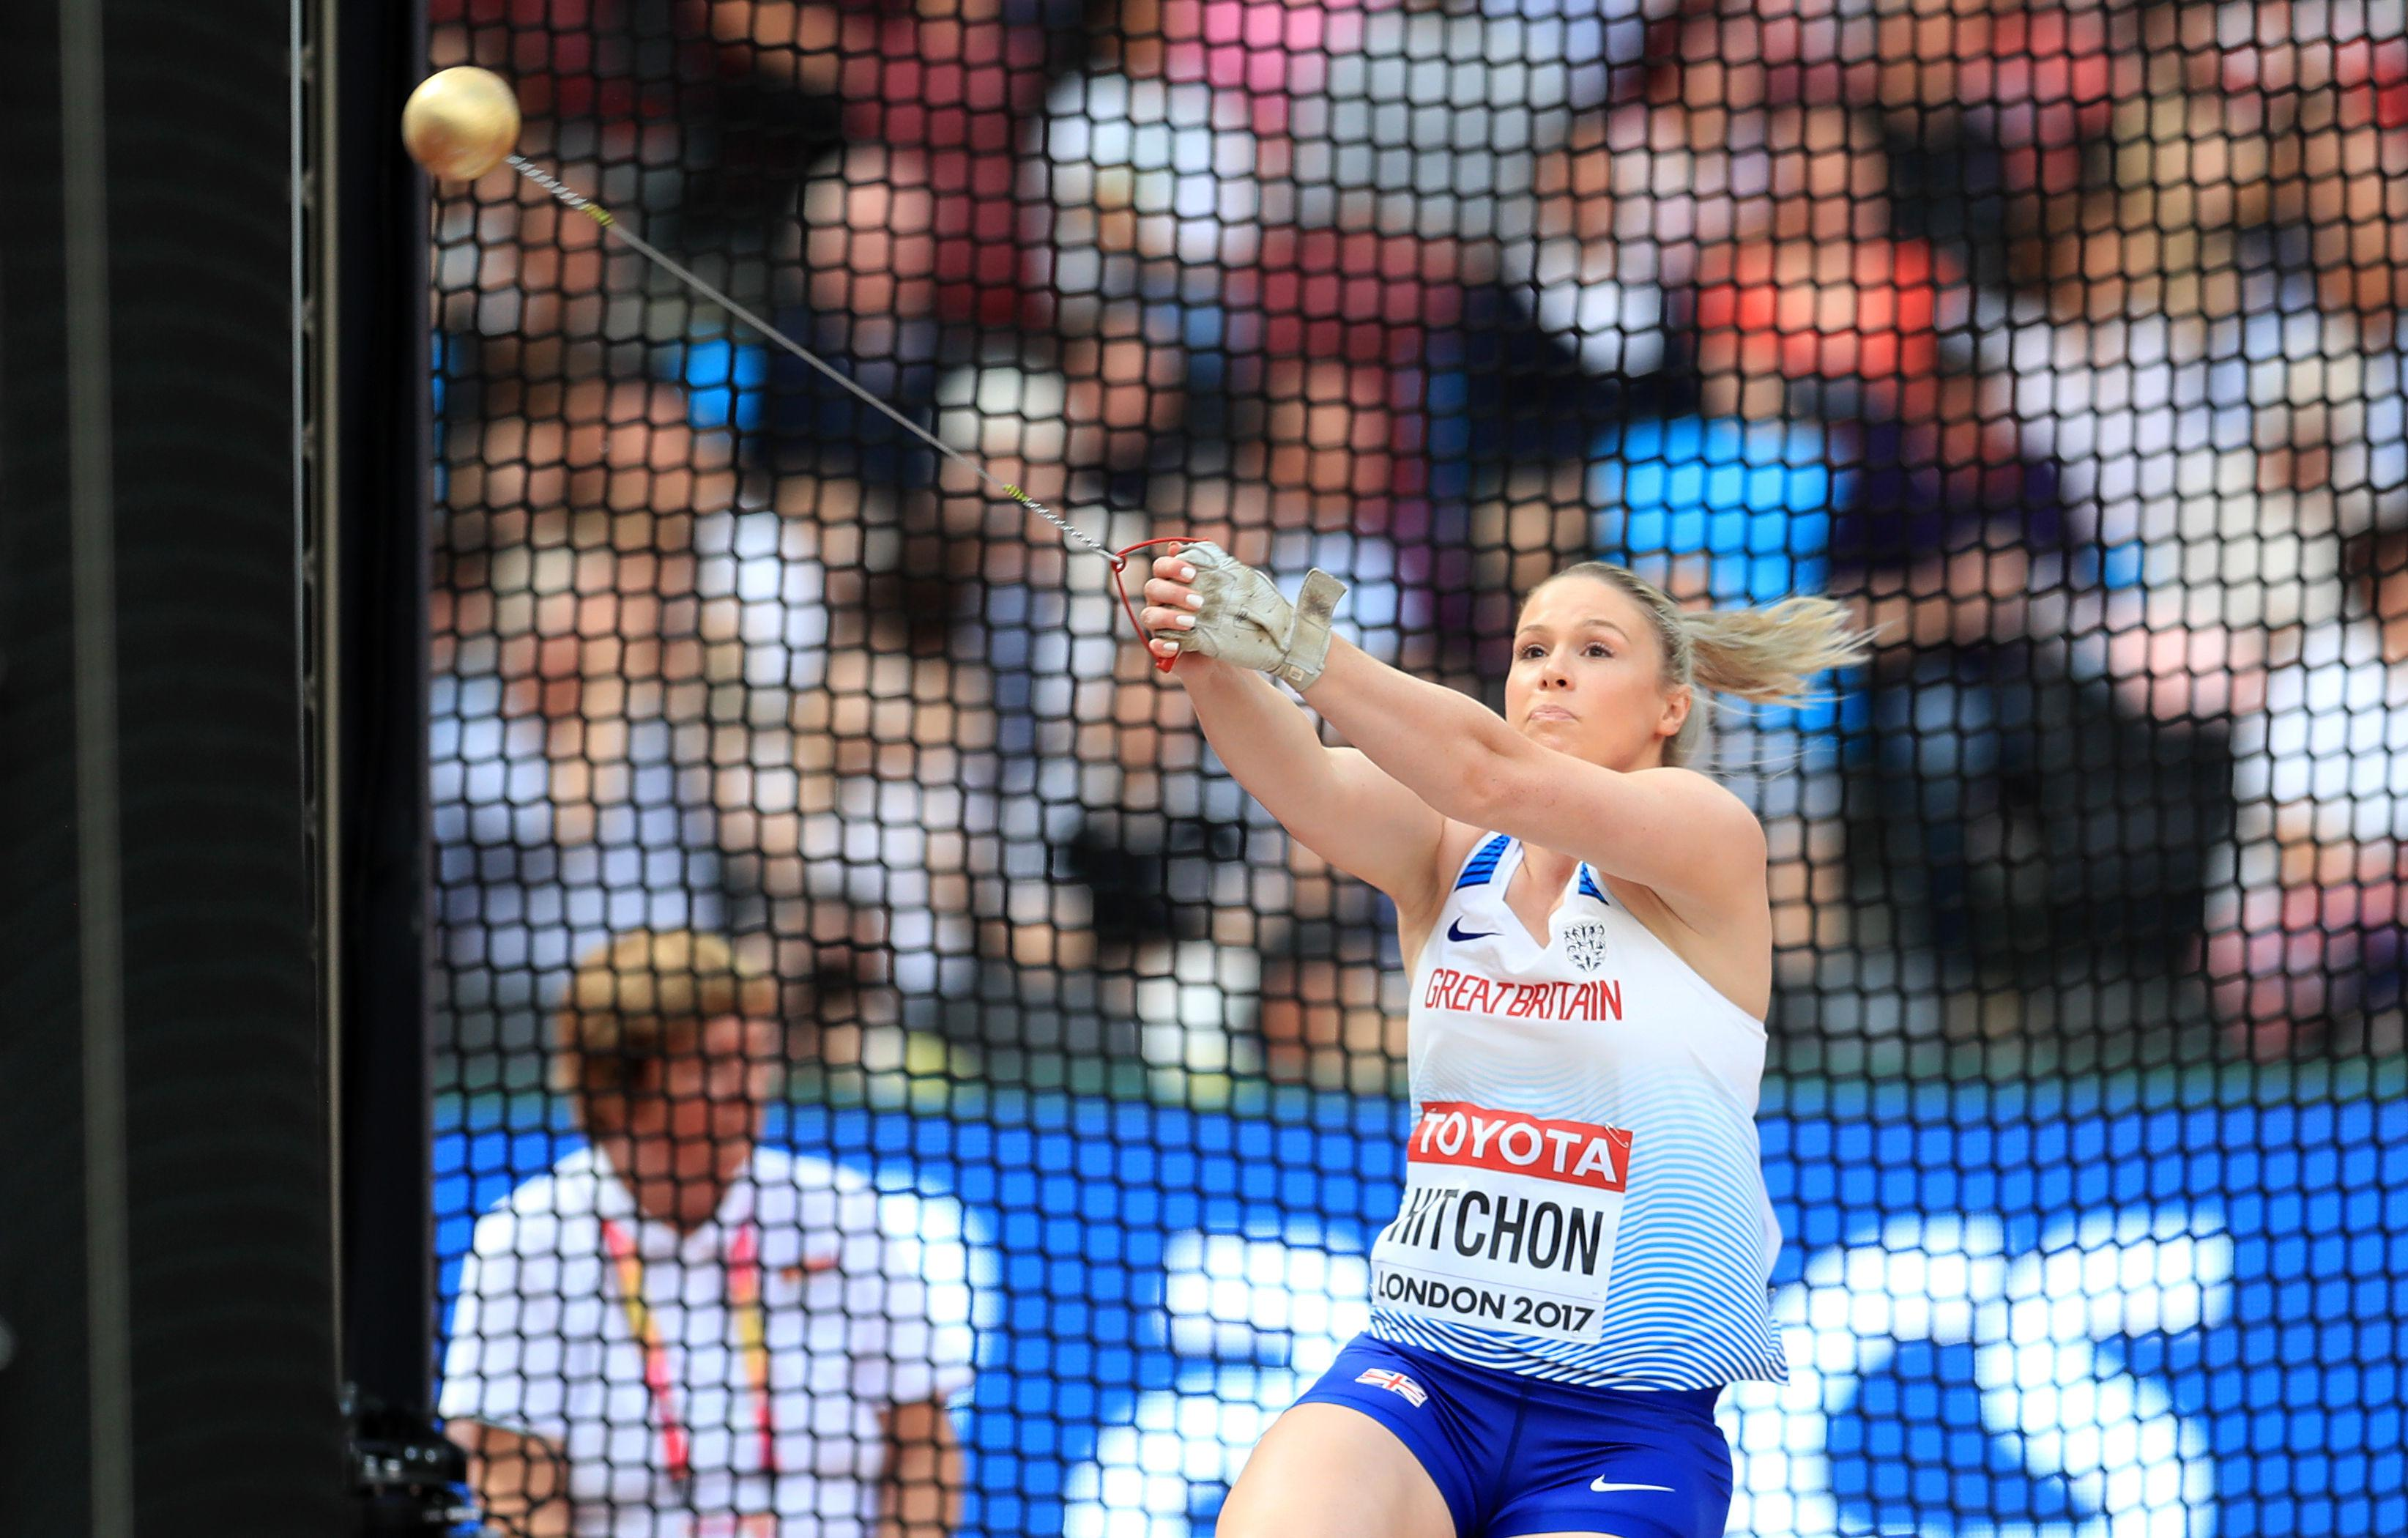 Sophie Hitchon became the first British woman to win an Olympic hammer medal in Rio